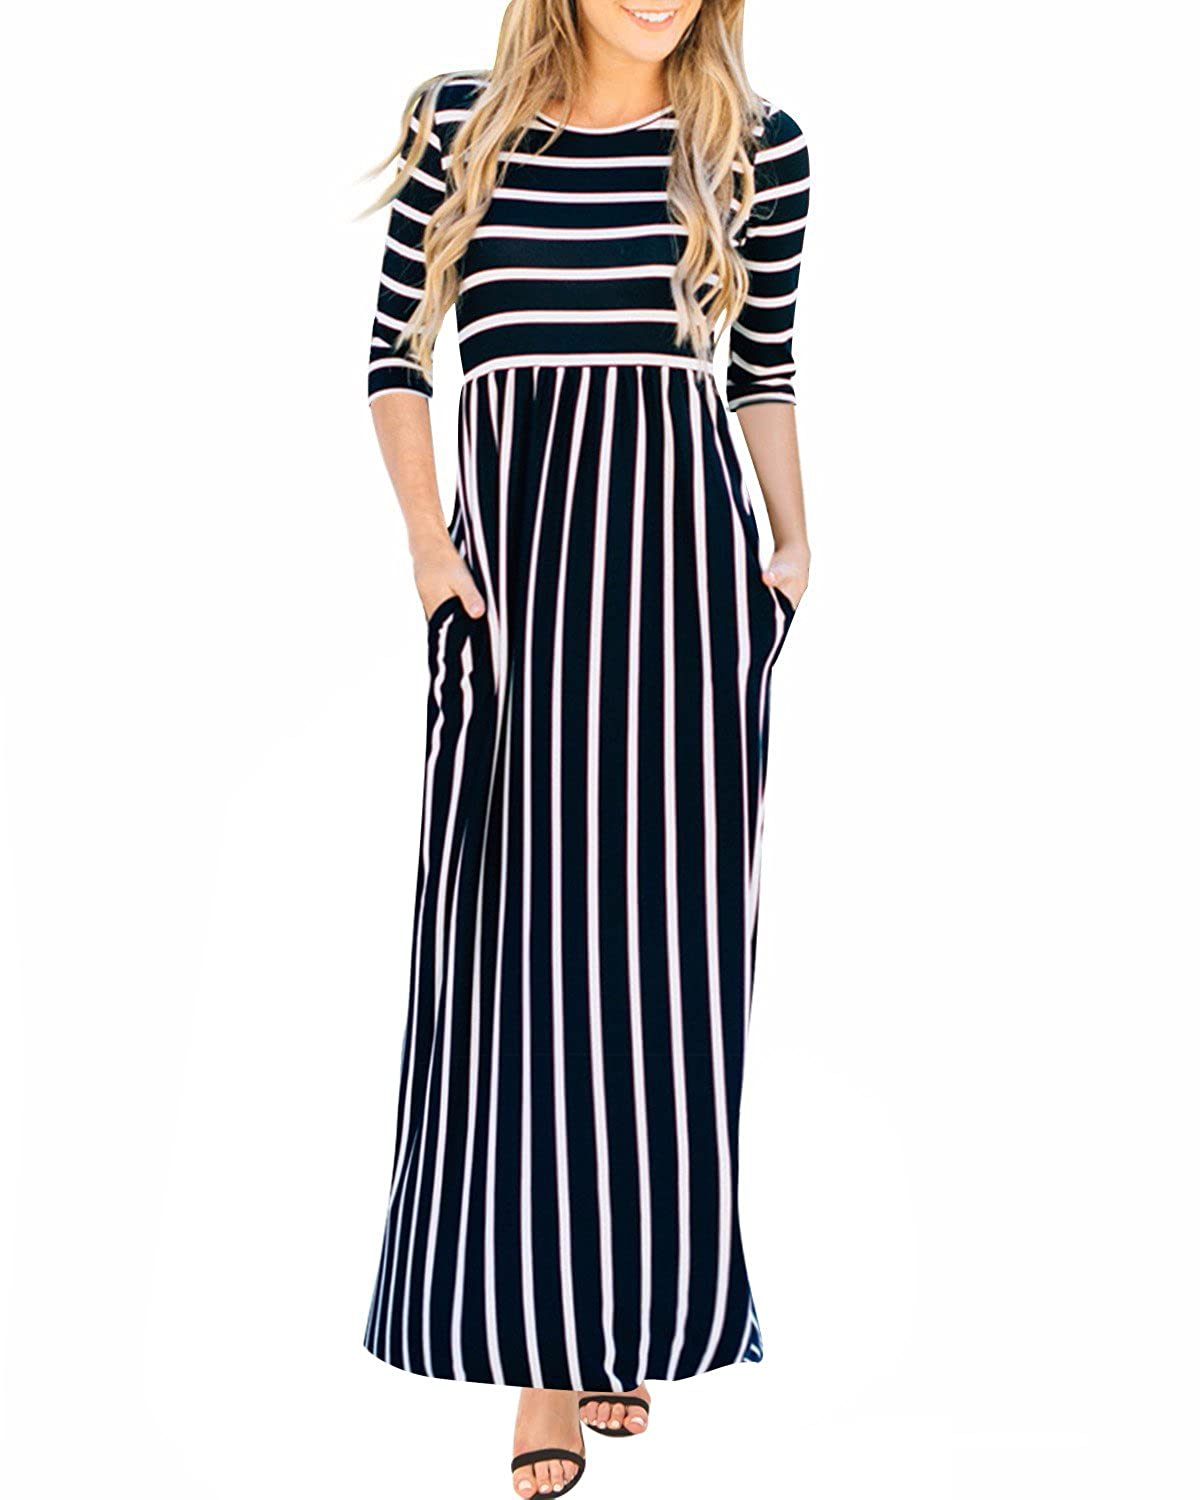 444e52dd4e Features: Long striped dress, Elastic waist, Side pockets, Full length,  Light weight, Scoop neck ,Boho style, Flare dress. Occasion: Suit for  casual wear, ...